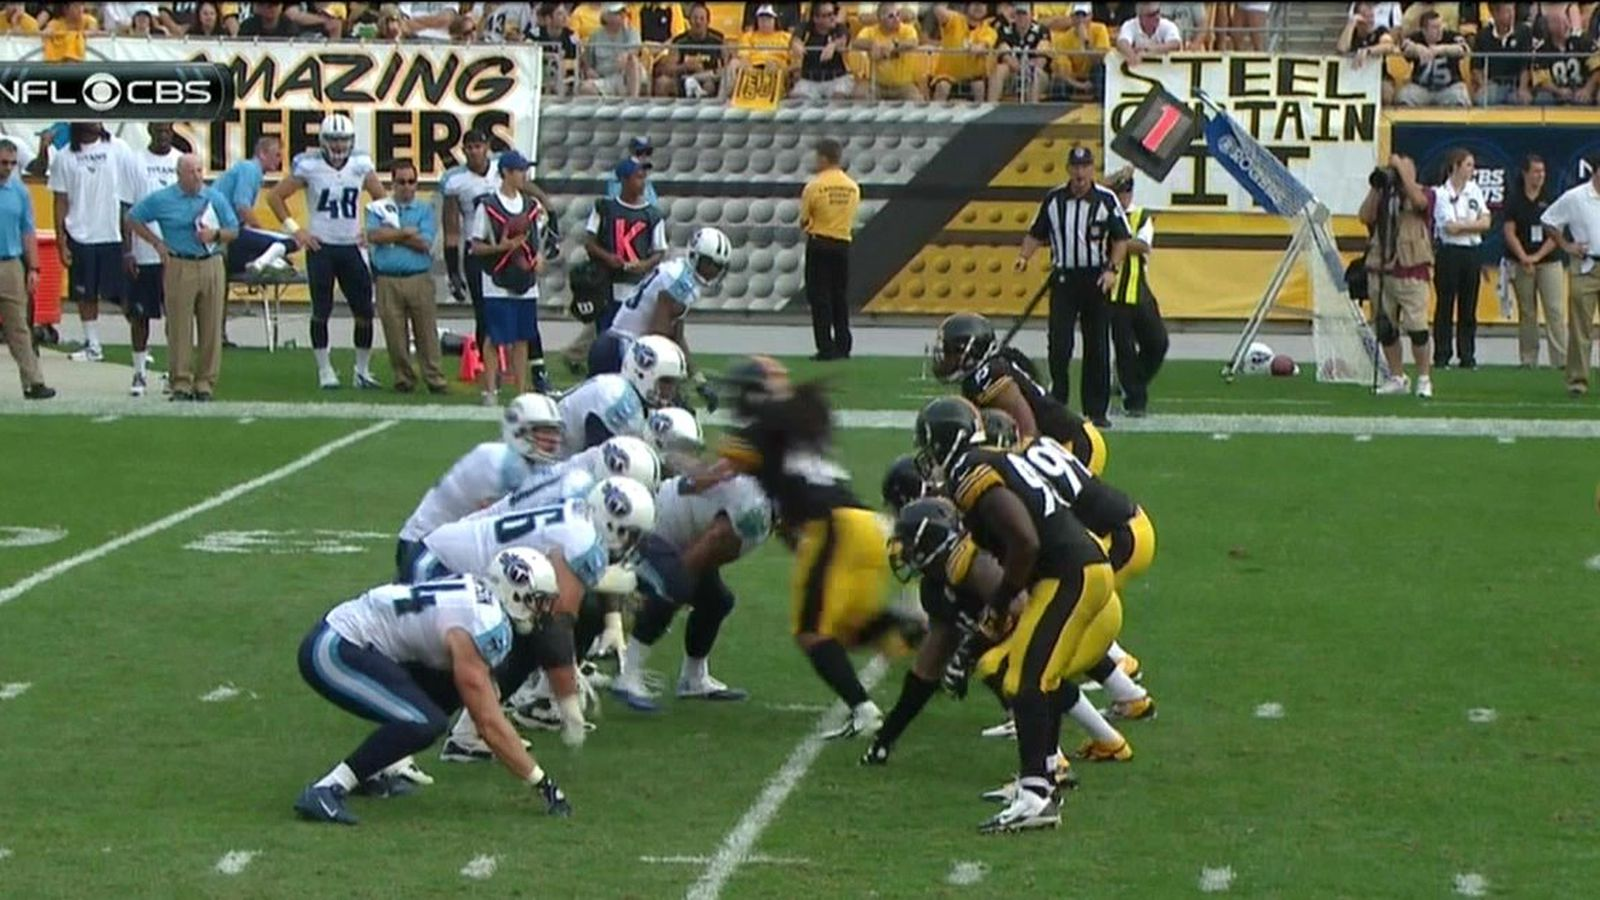 Troy Polamalu Times The Titans Snap Count Perfectly